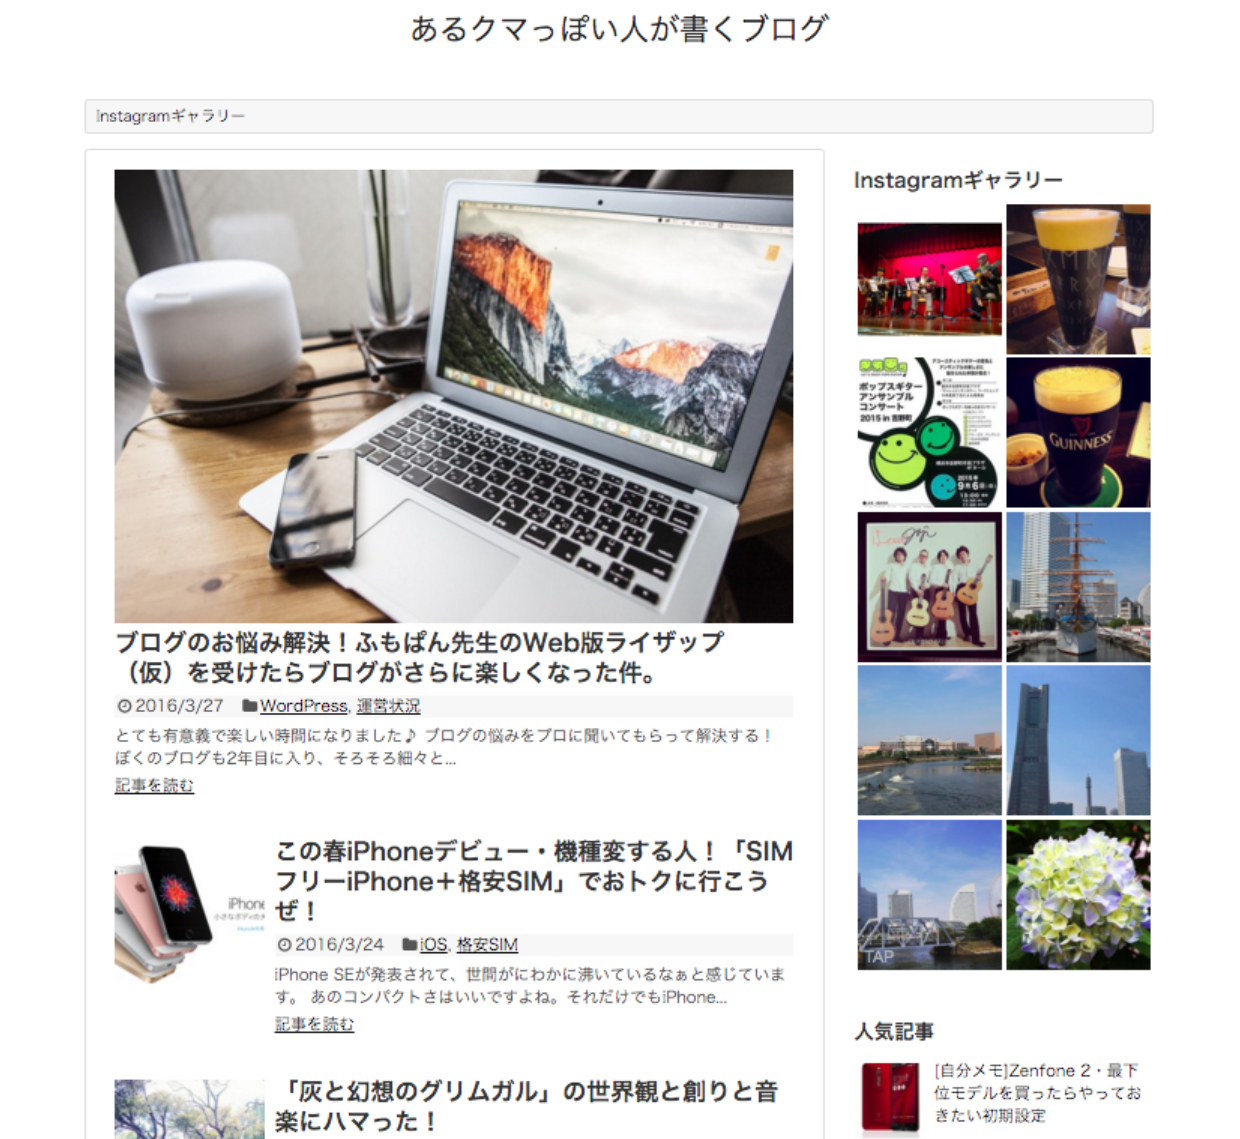 screenshot-yasumihirotaka.com 2016-03-28 02-01-48old